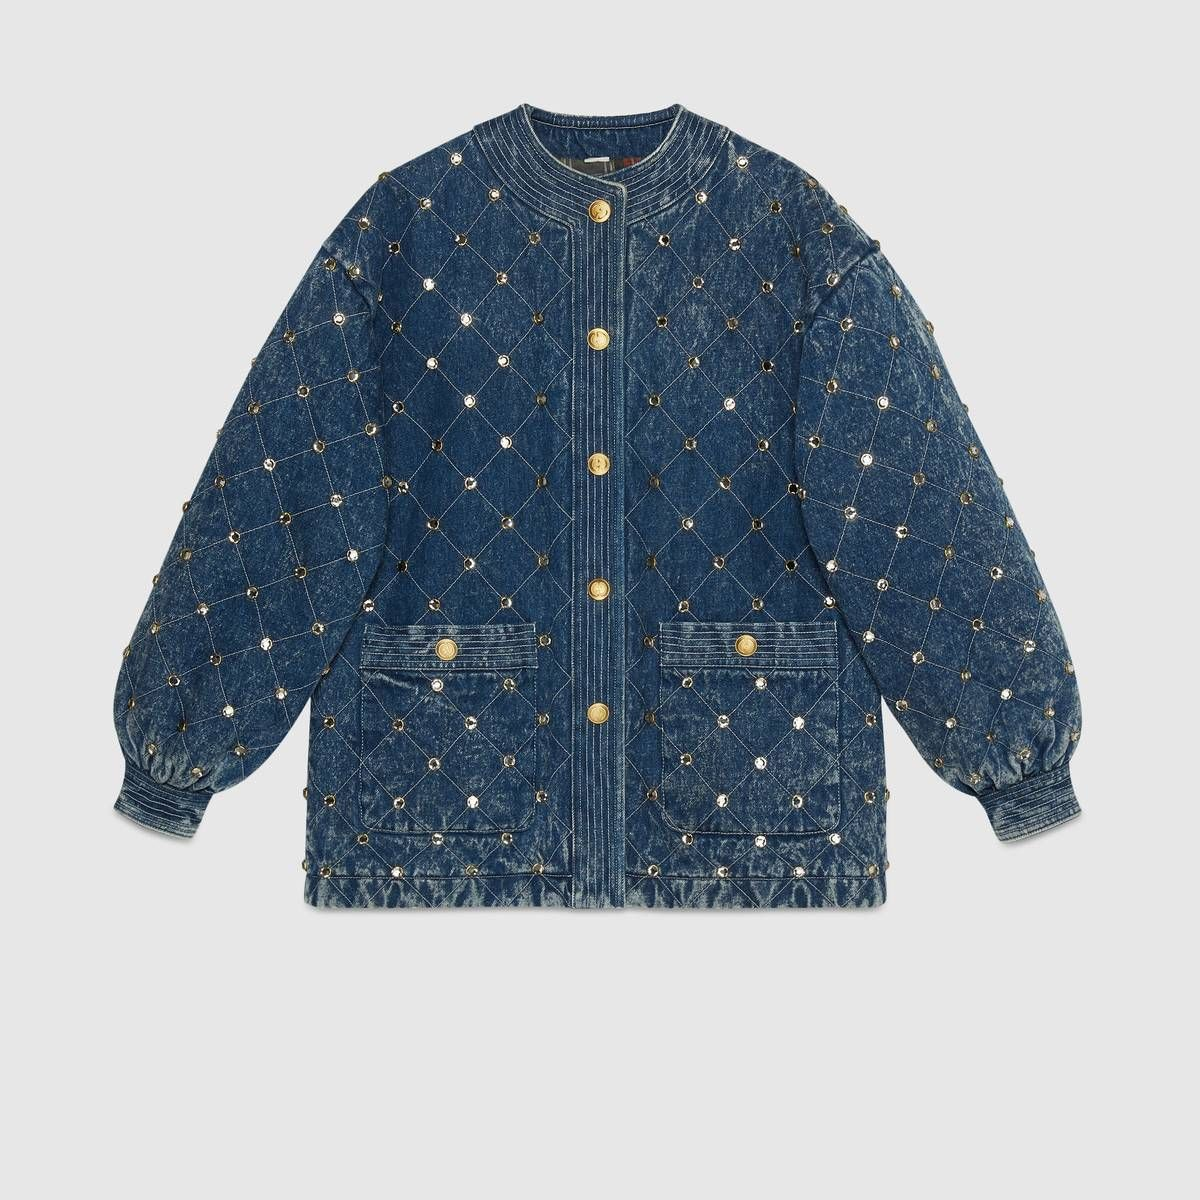 d66d4469c Shop the Quilted marble denim jacket with crystals by Gucci. A style  synonymous with the